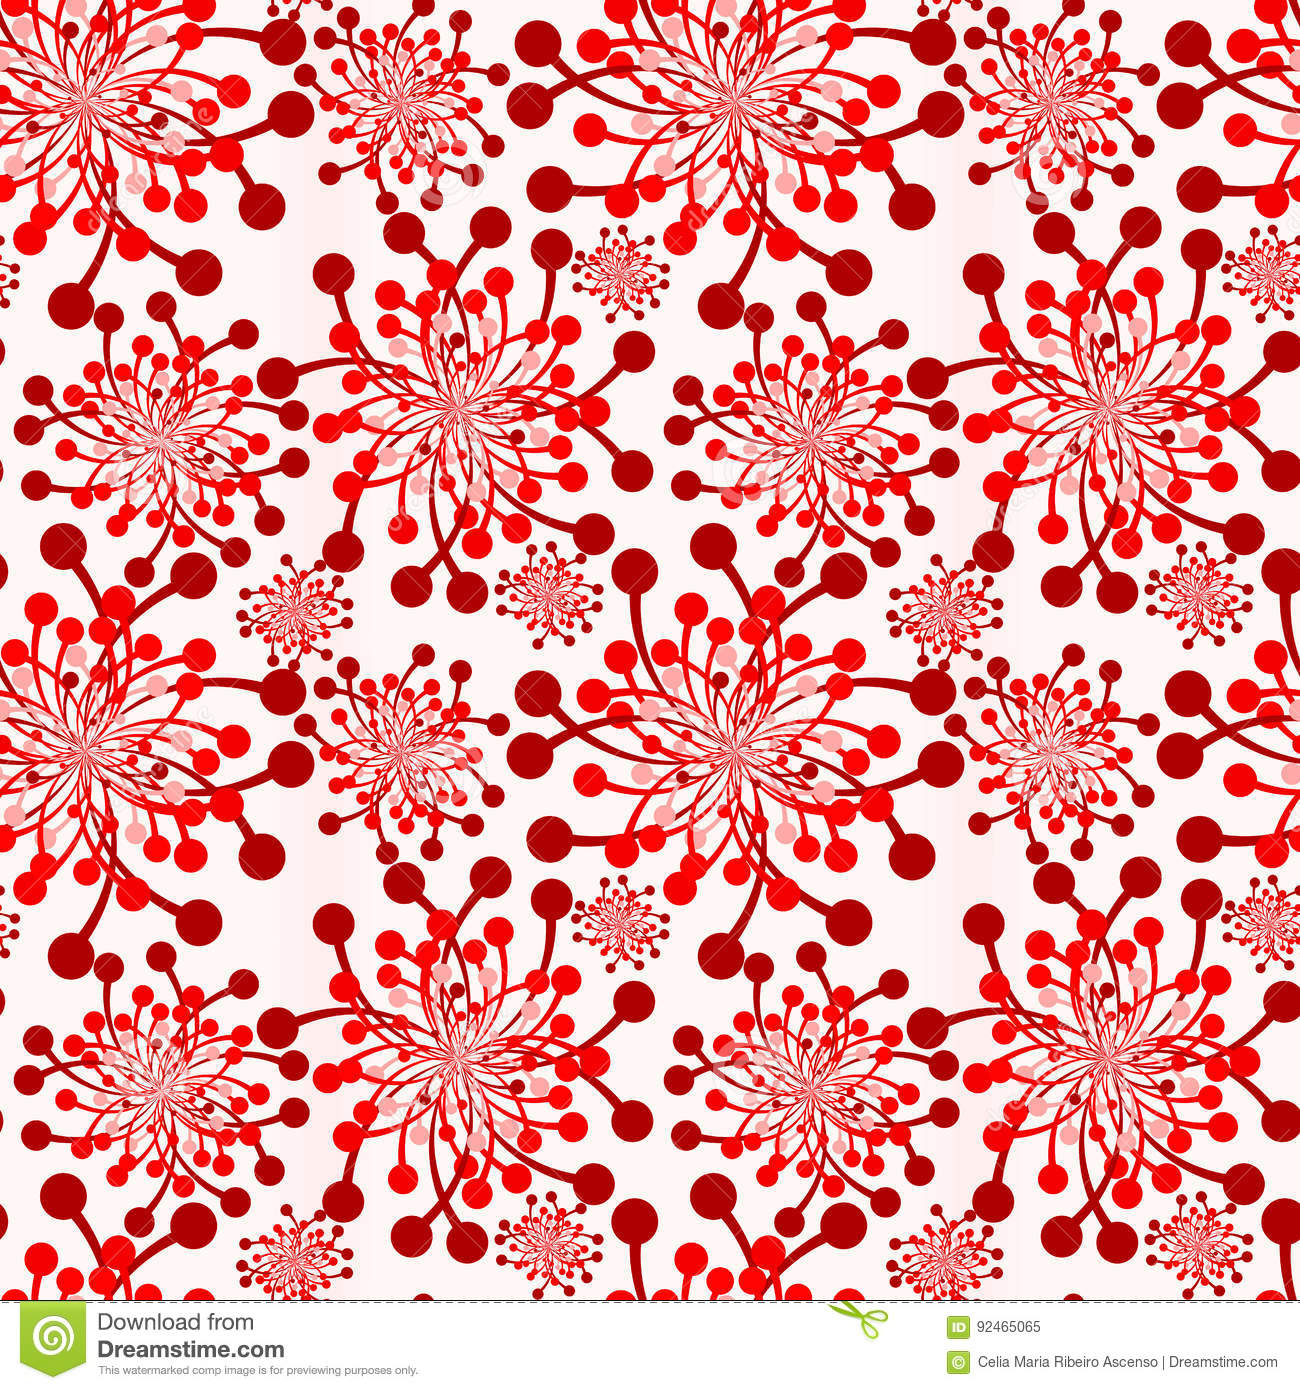 Red Flowers Vintage Wallpaper Seamless Texture